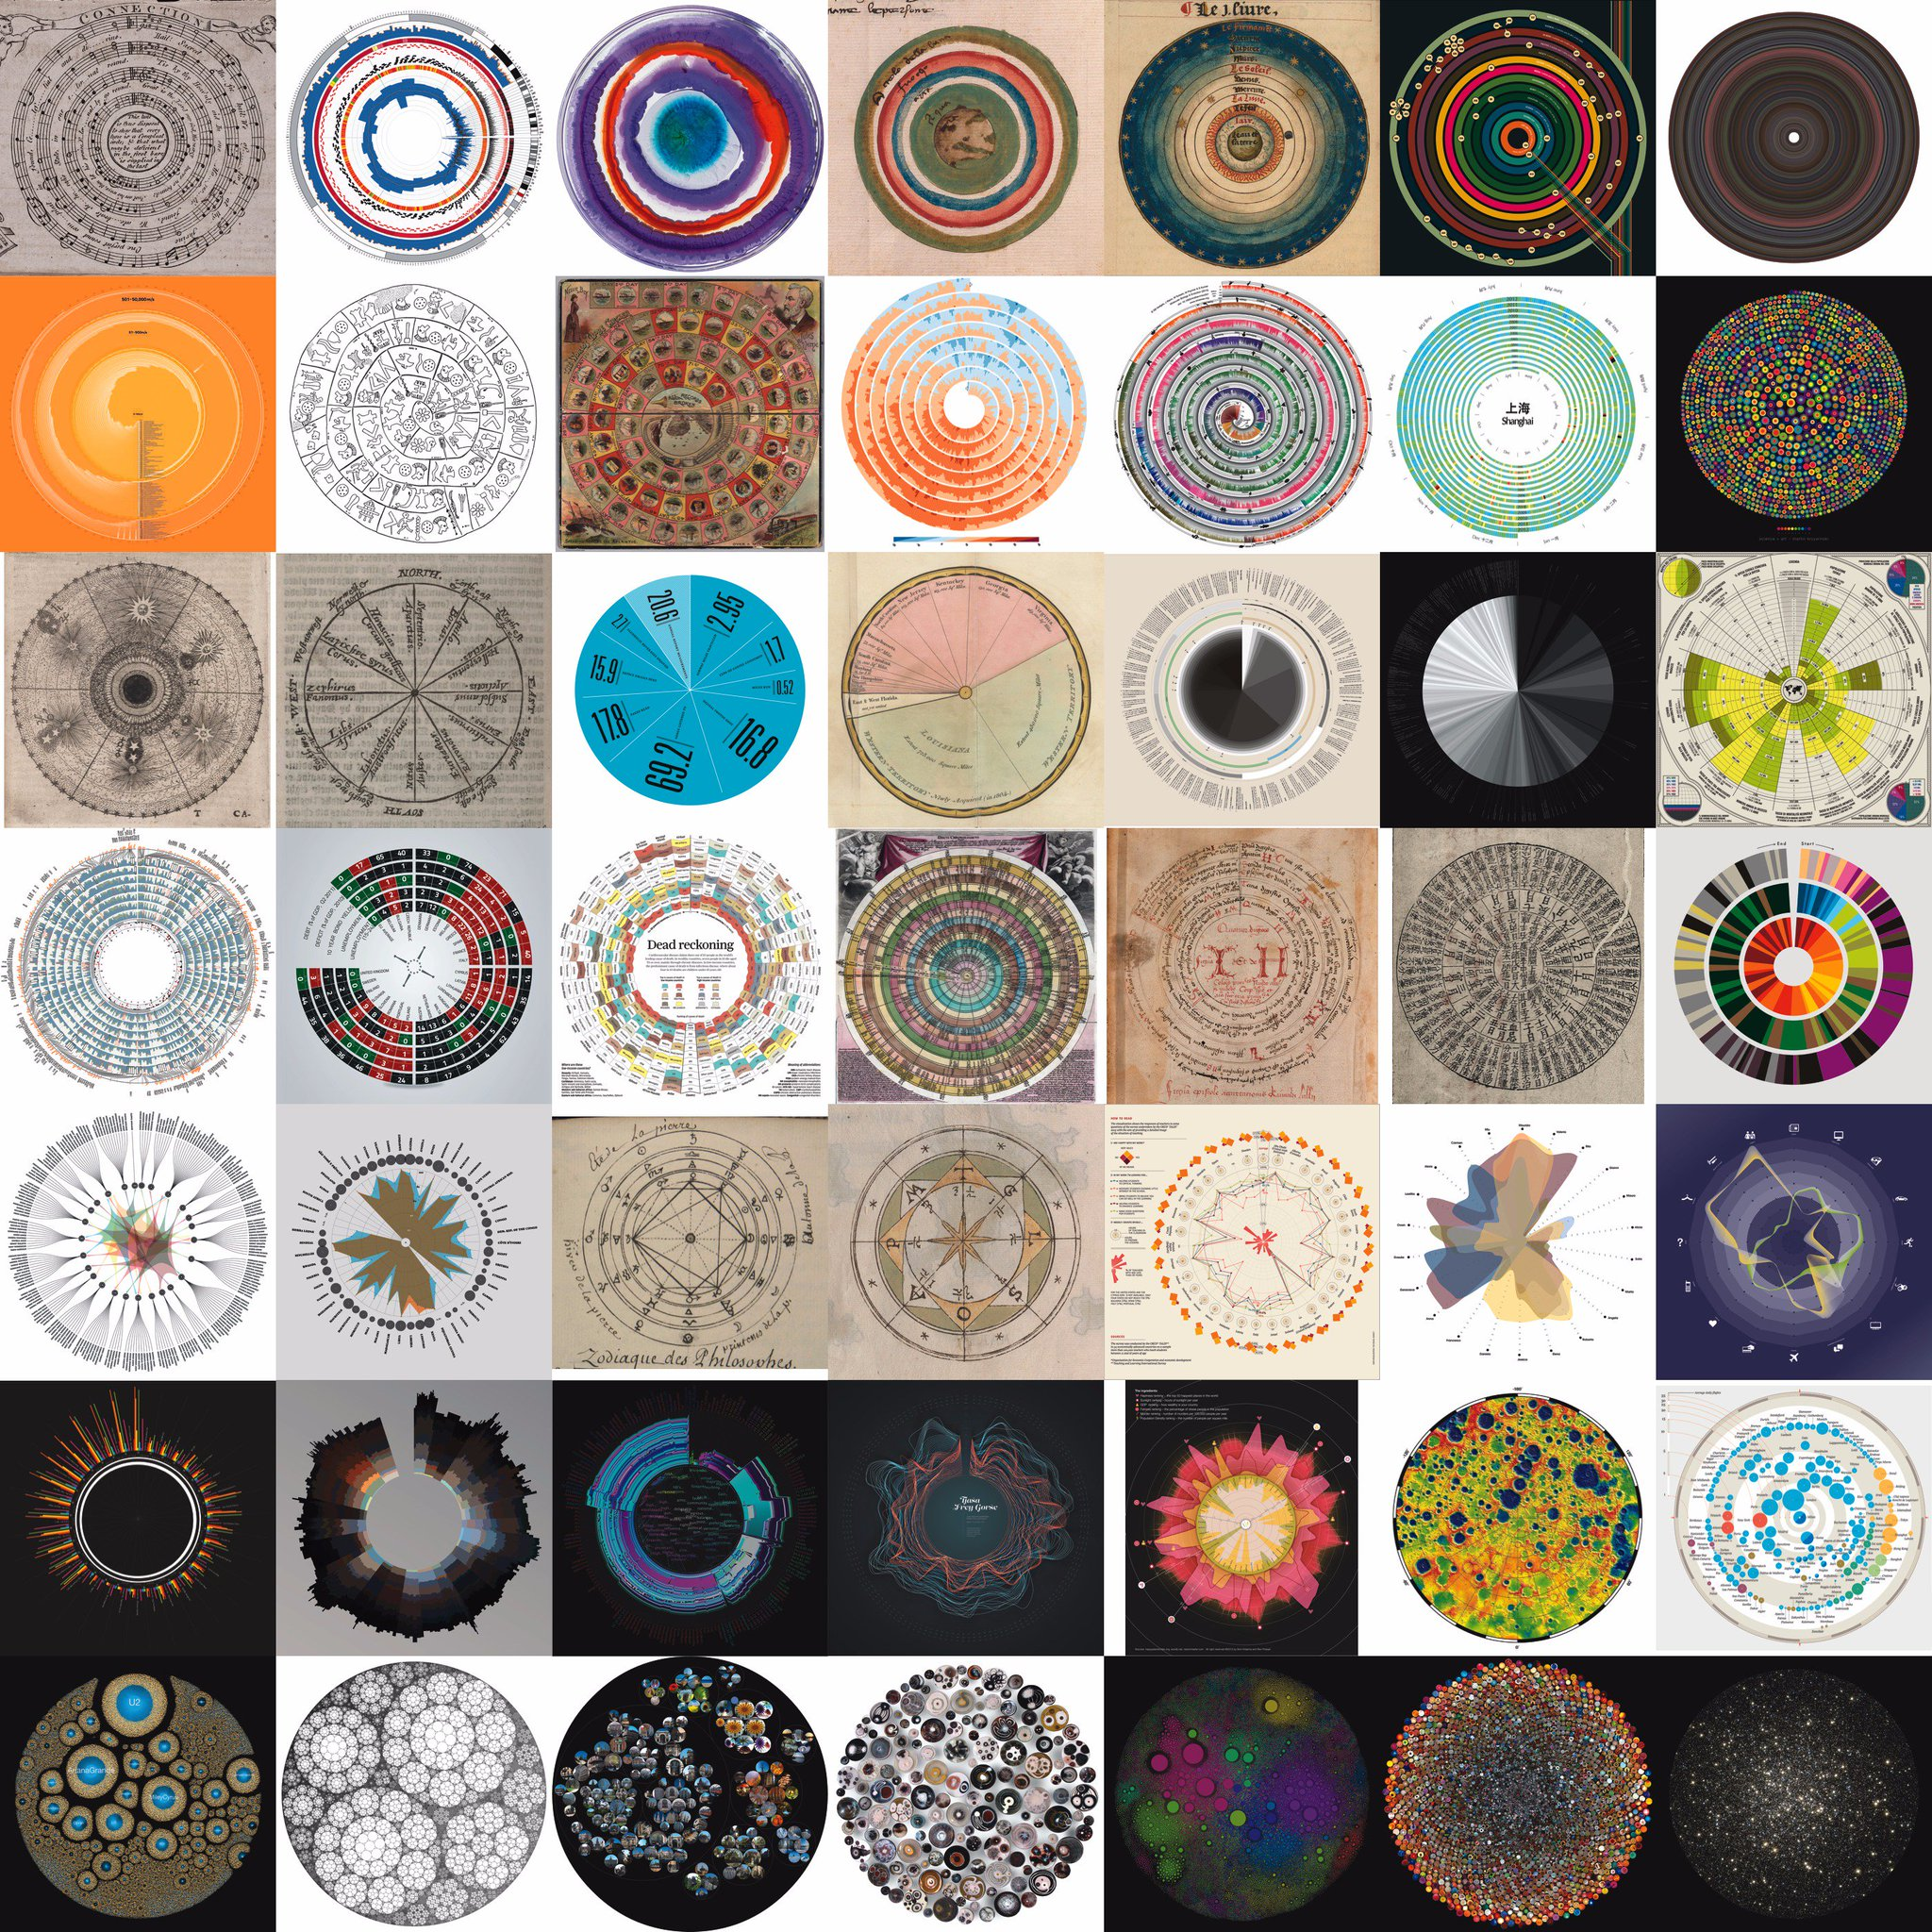 A small sample of the 300+ circular models, charts, and illustrations featured in The Book of Circles: Visualizing Spheres of Knowledge https://t.co/pv0j86UaEN